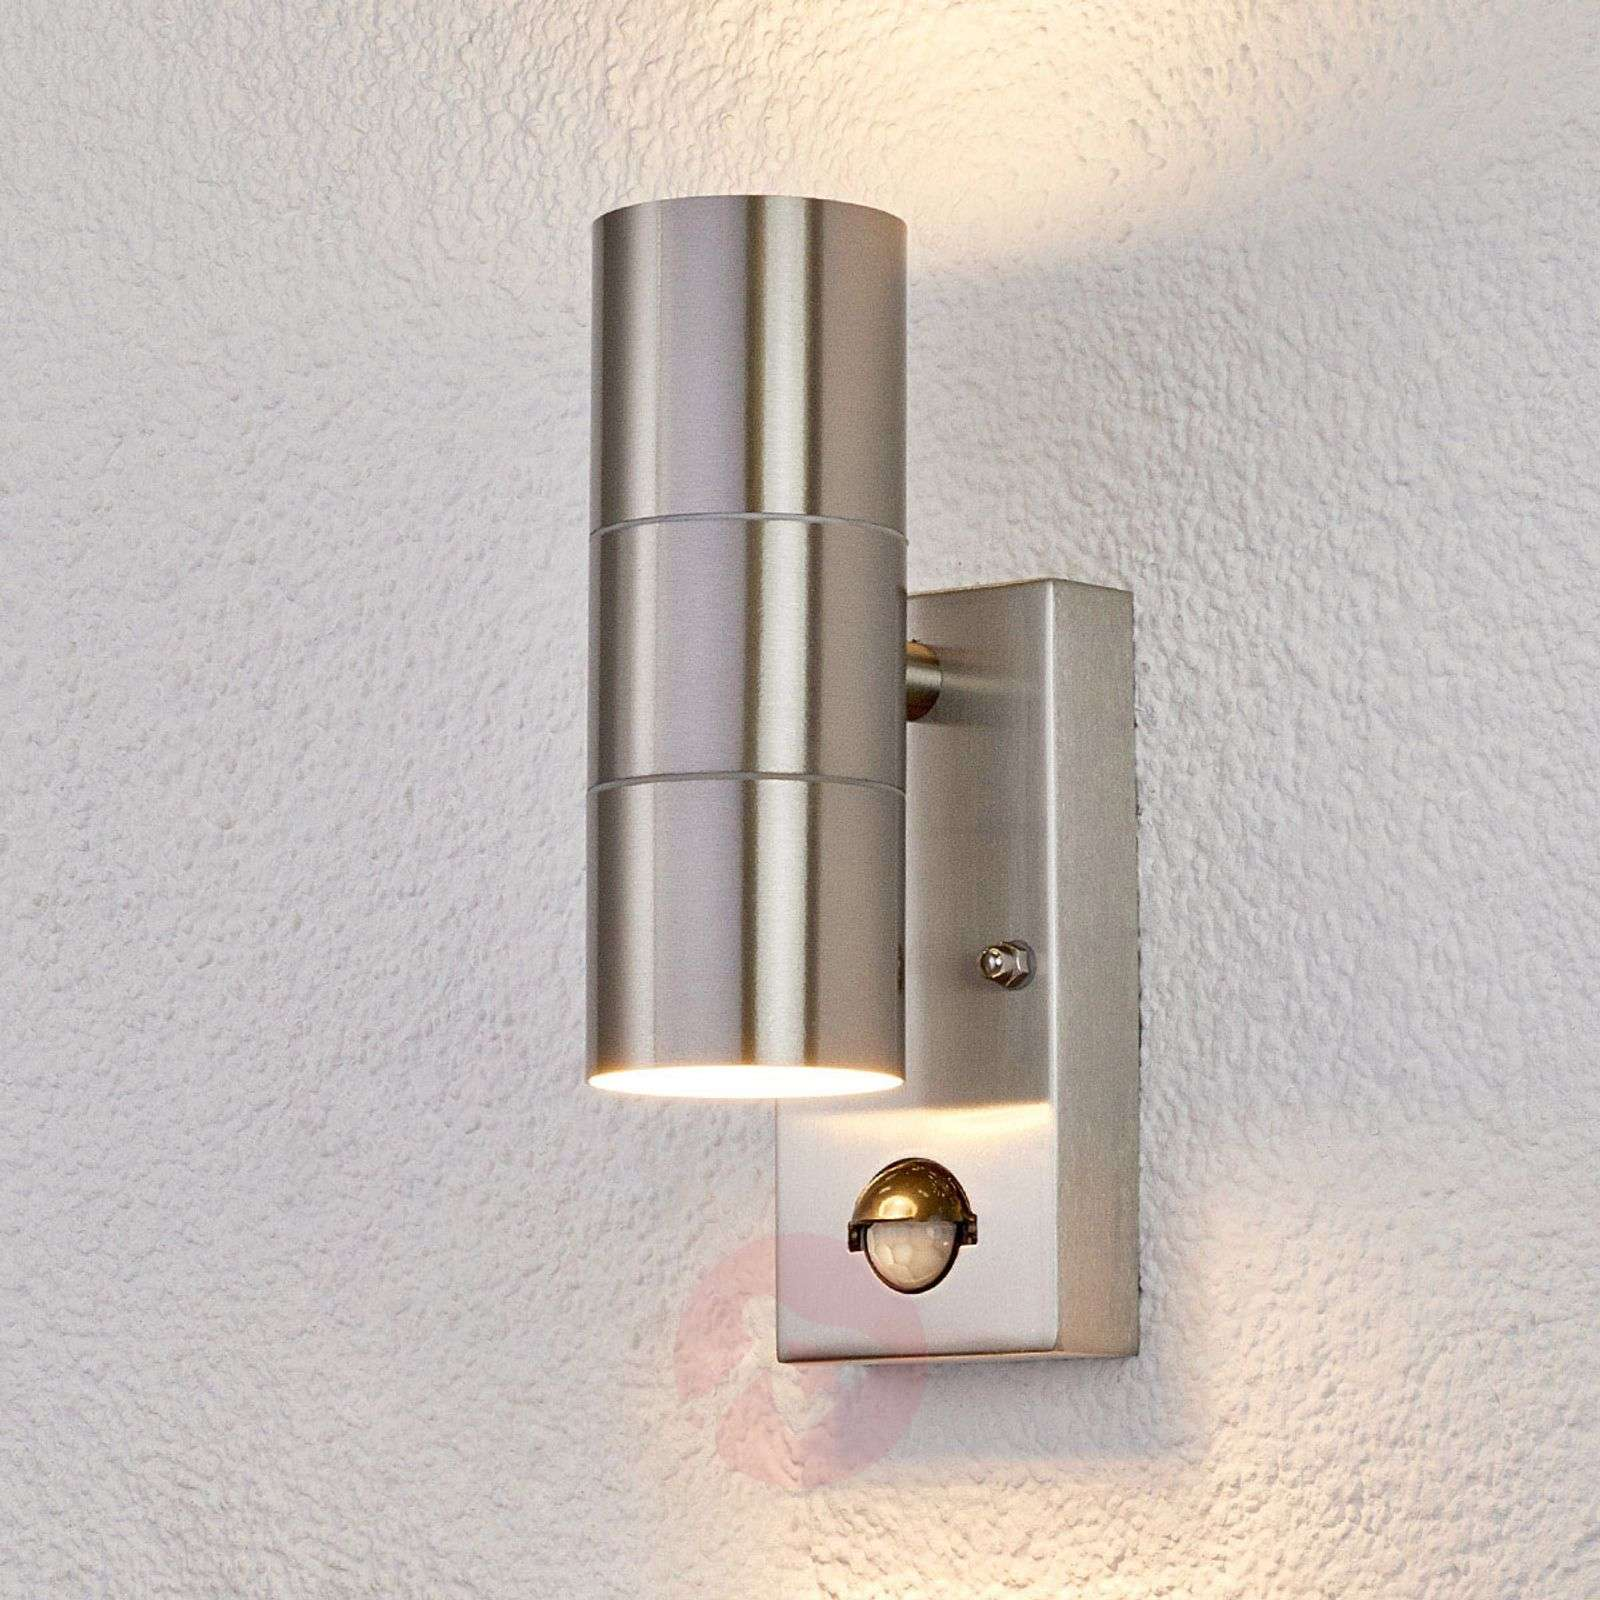 Outdoor Wall Light Eyrin With Motion Detector Lights Co Uk